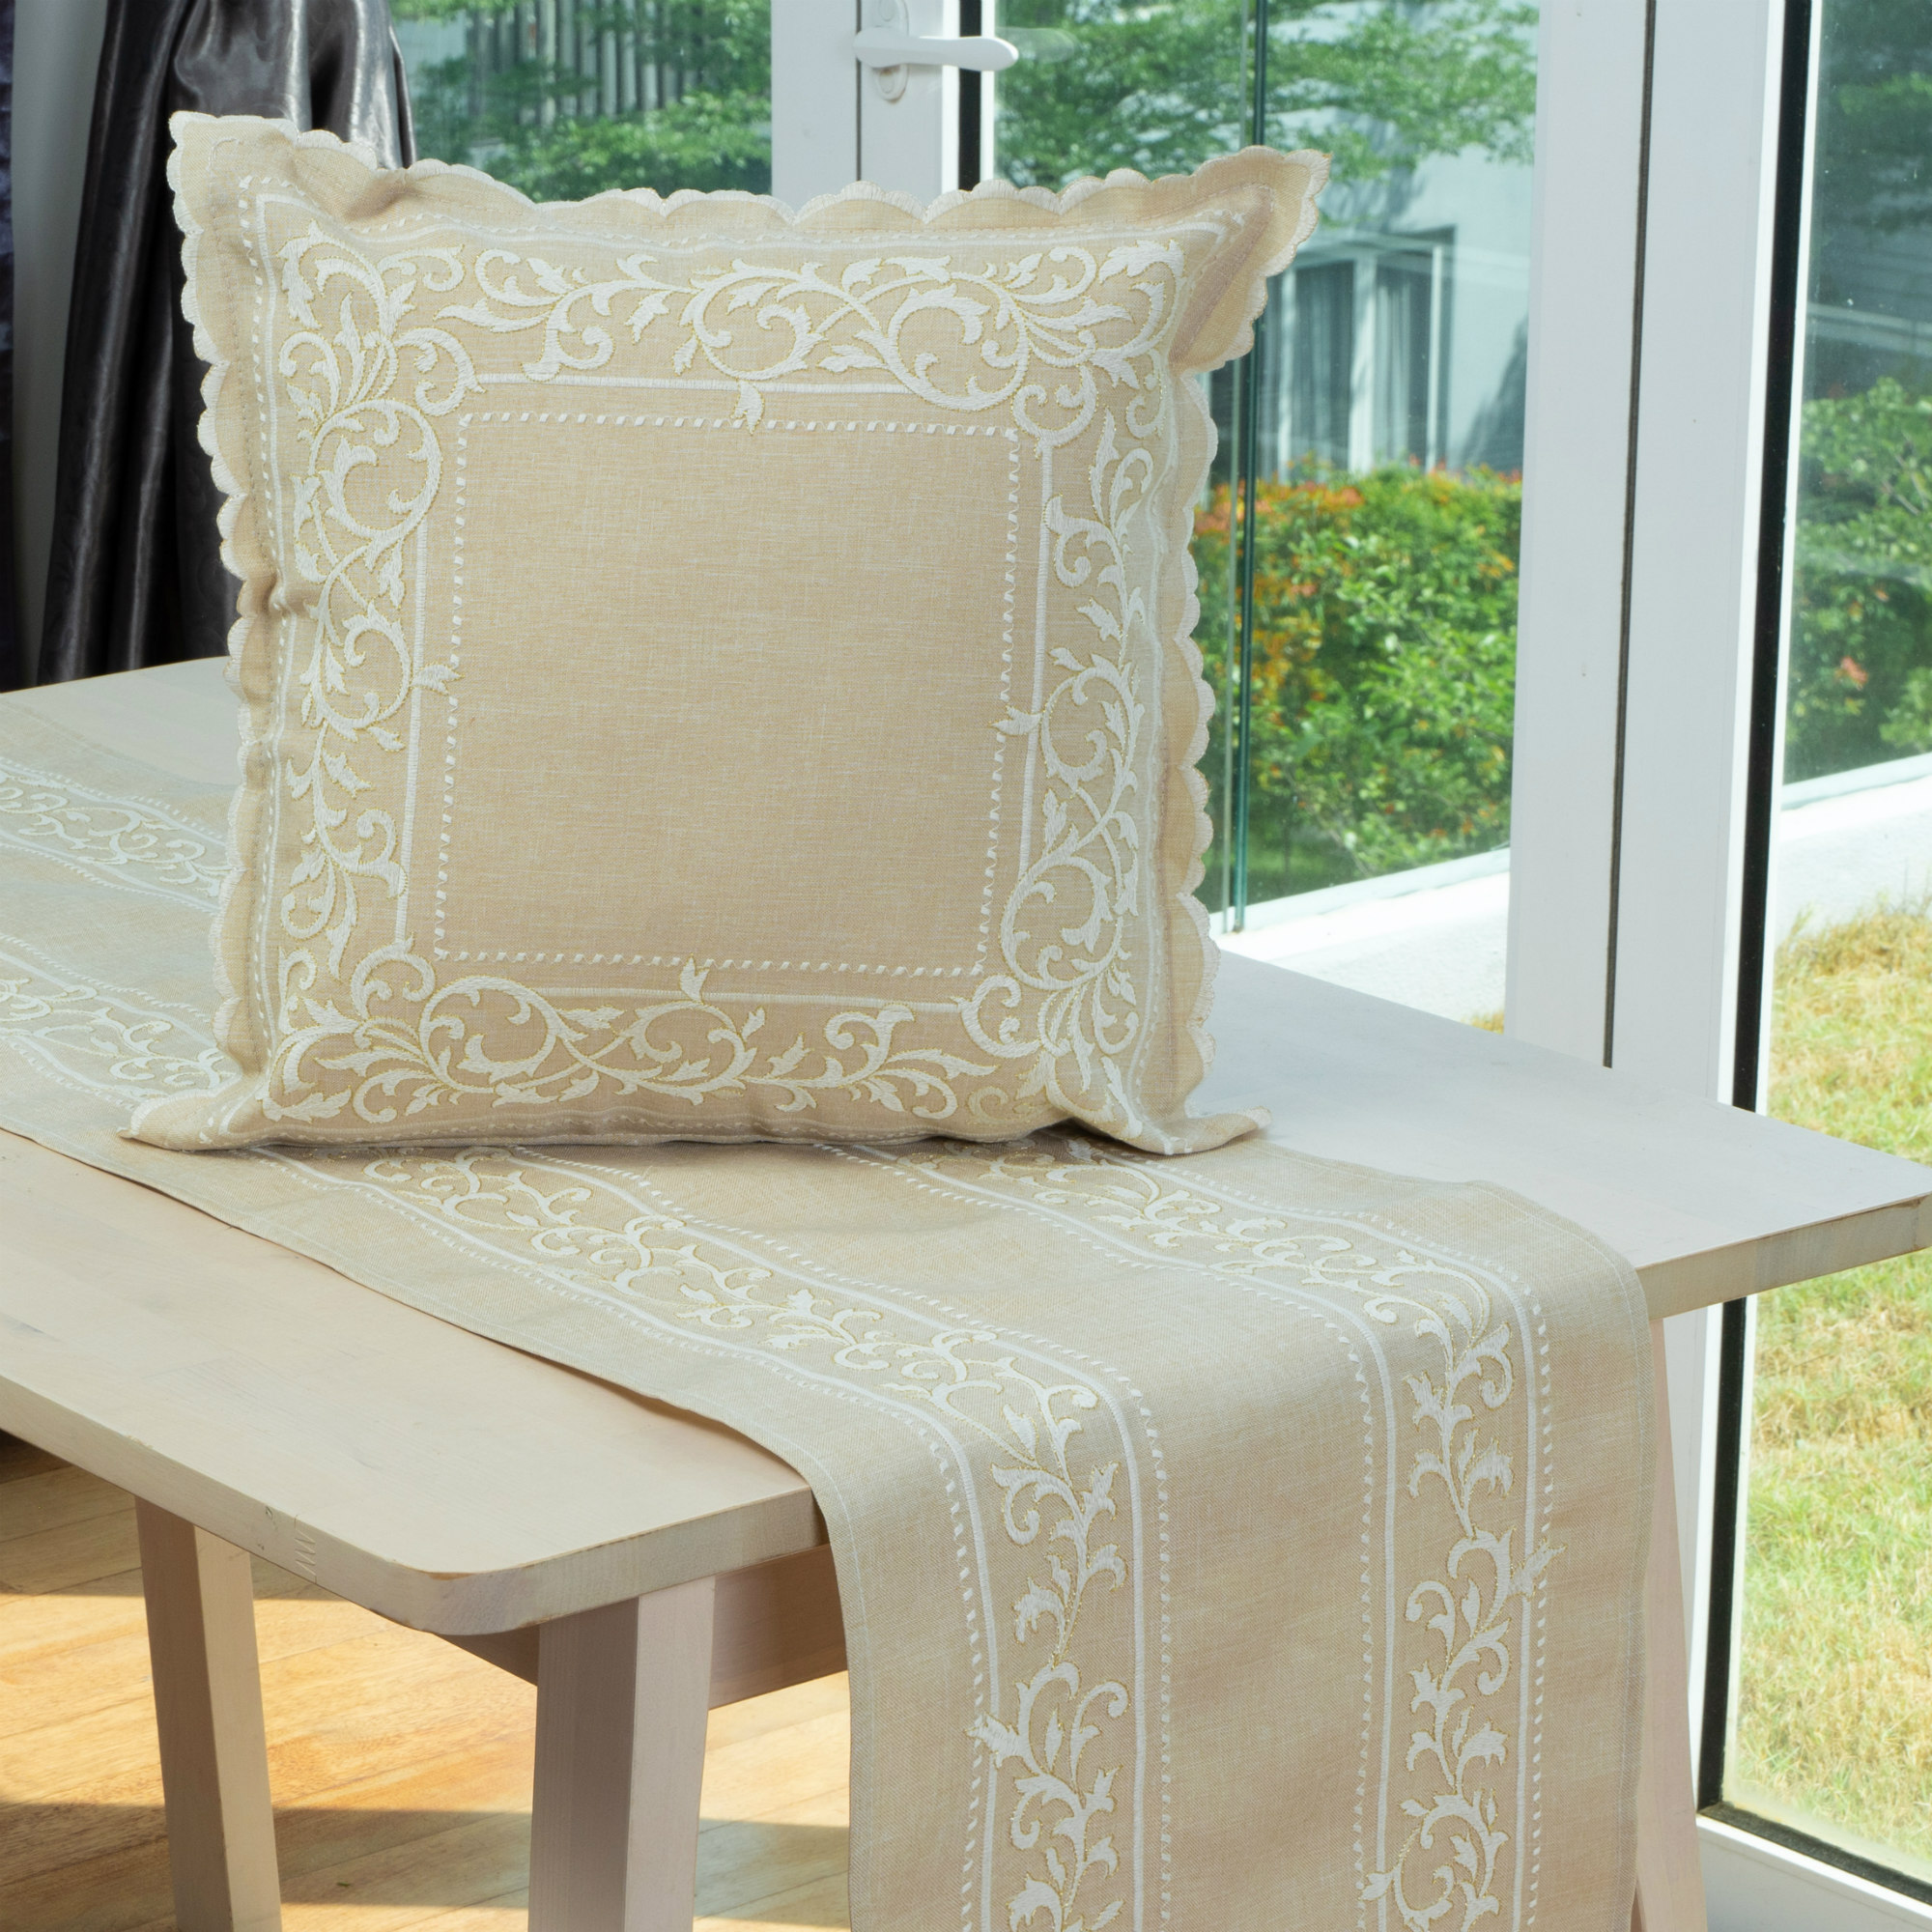 """Lace & Embroidery Royal Oasis Embroidery Cushion Cover With Scalloped Finished Edges. Easy Care Cation Fabric. 45x45cm/18x18"""" (Beige)"""